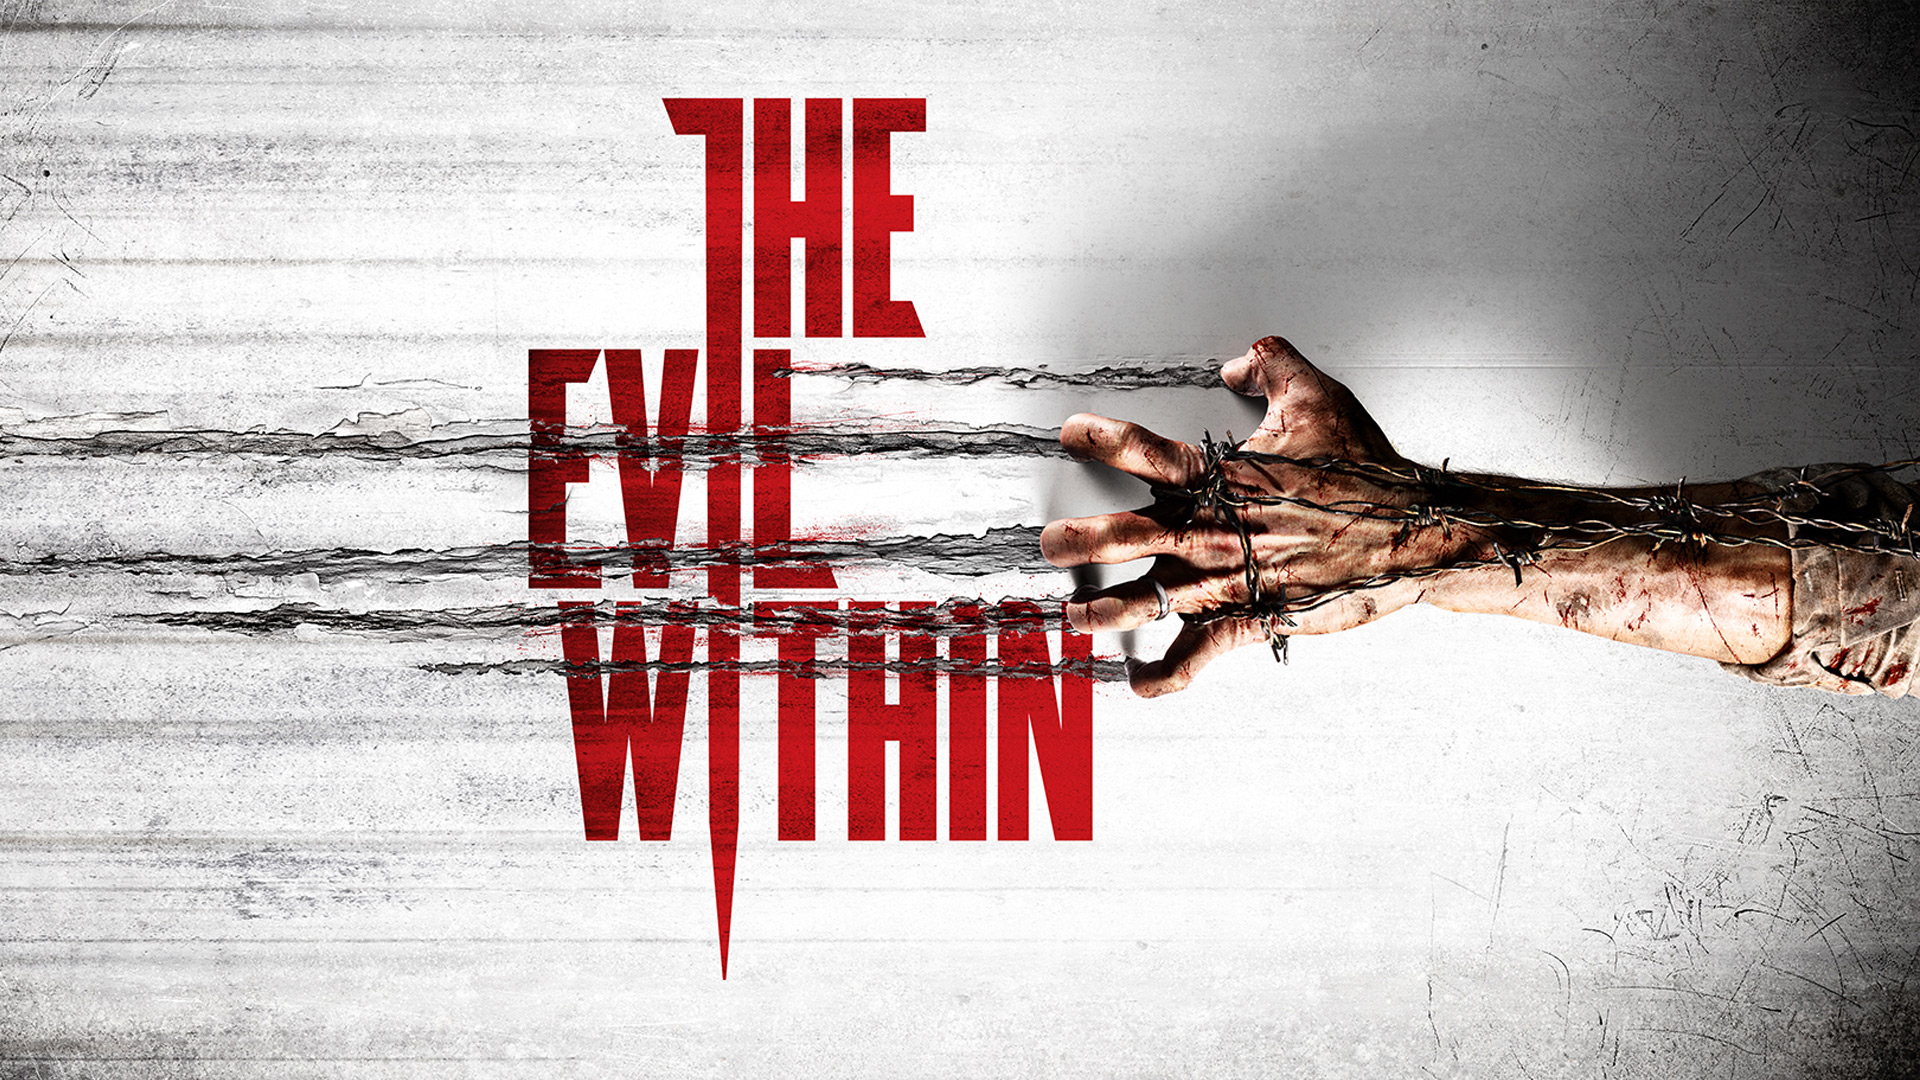 the-evil-within-wallpaper-hd - Gameranx